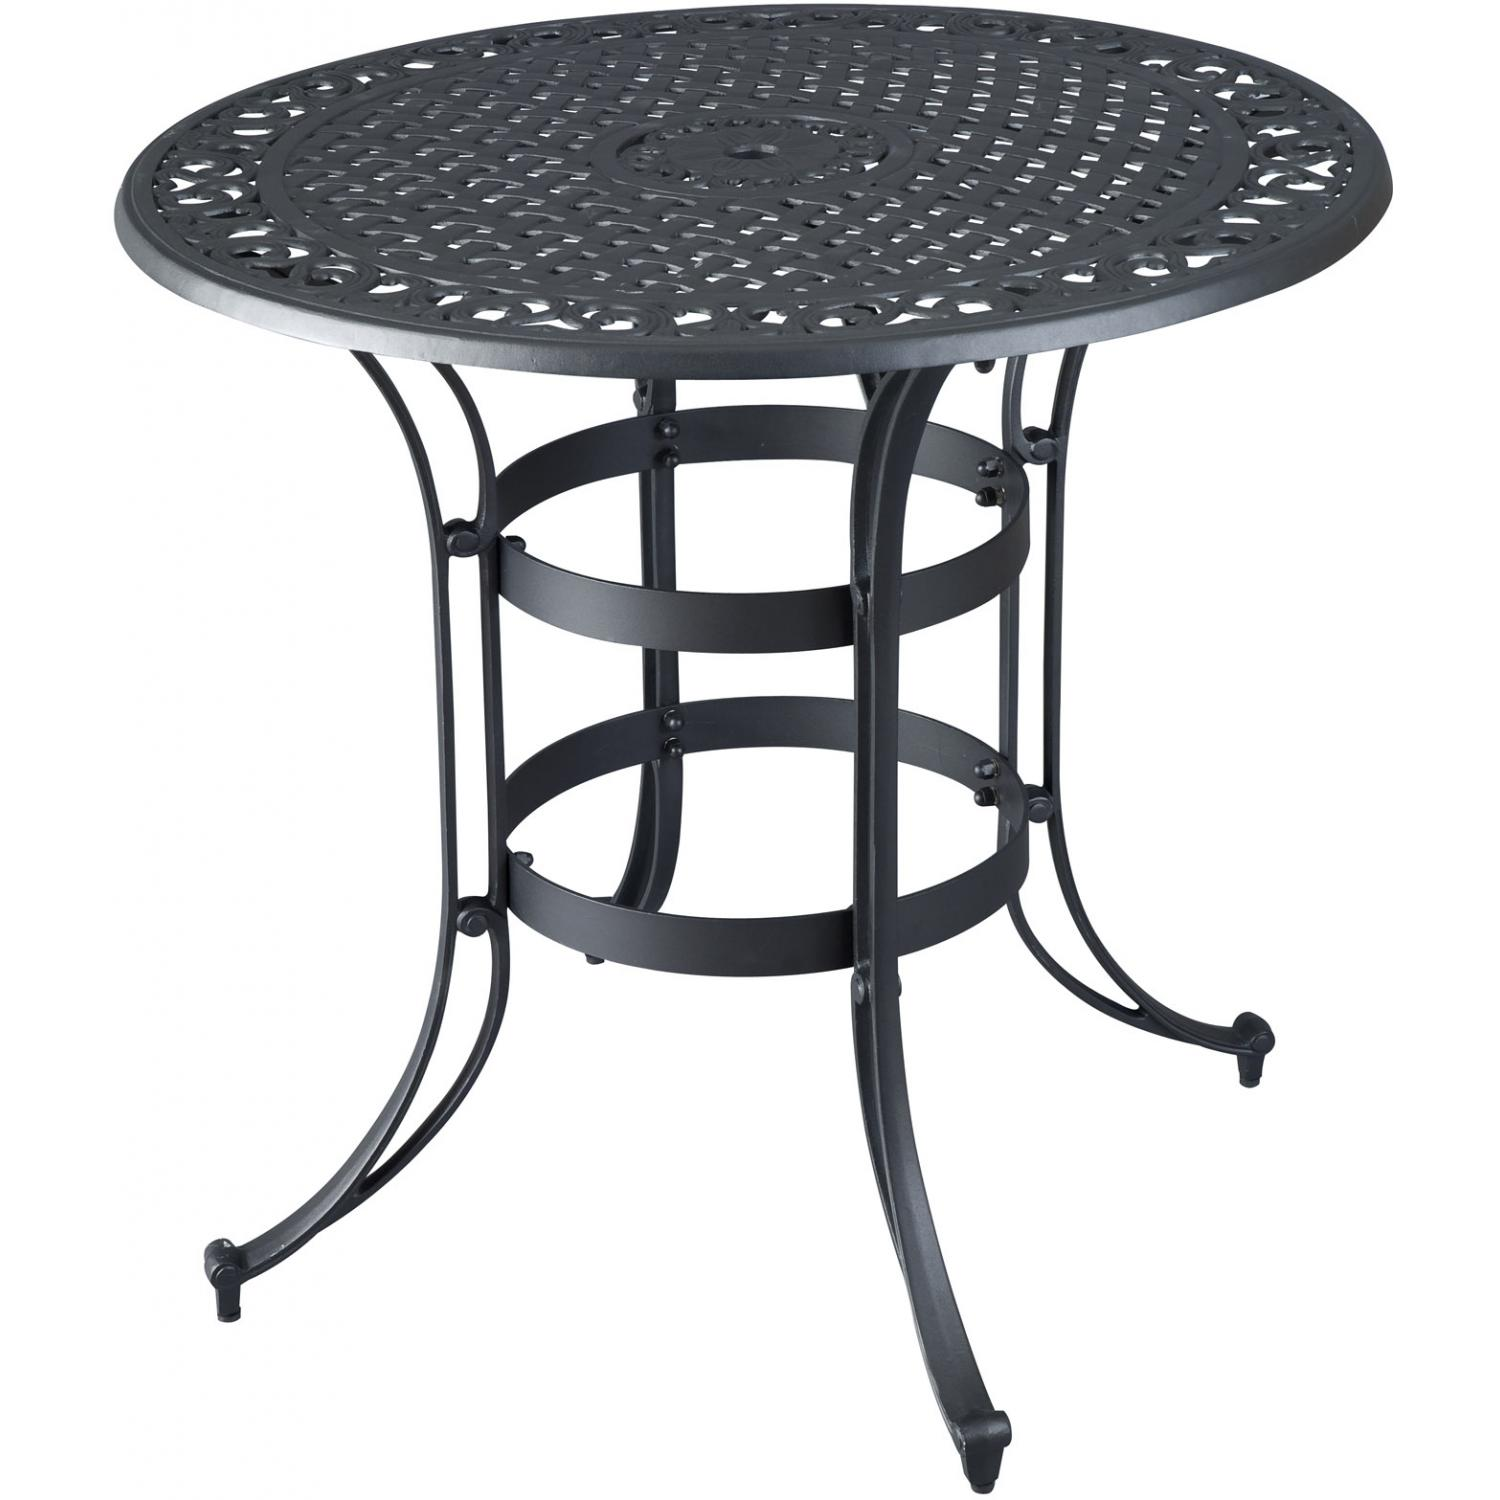 superb black metal patio table high top bistro accent marble half round kitchen retro lounge furniture living room trunk small decorative lamps circle coffee rod iron frame with